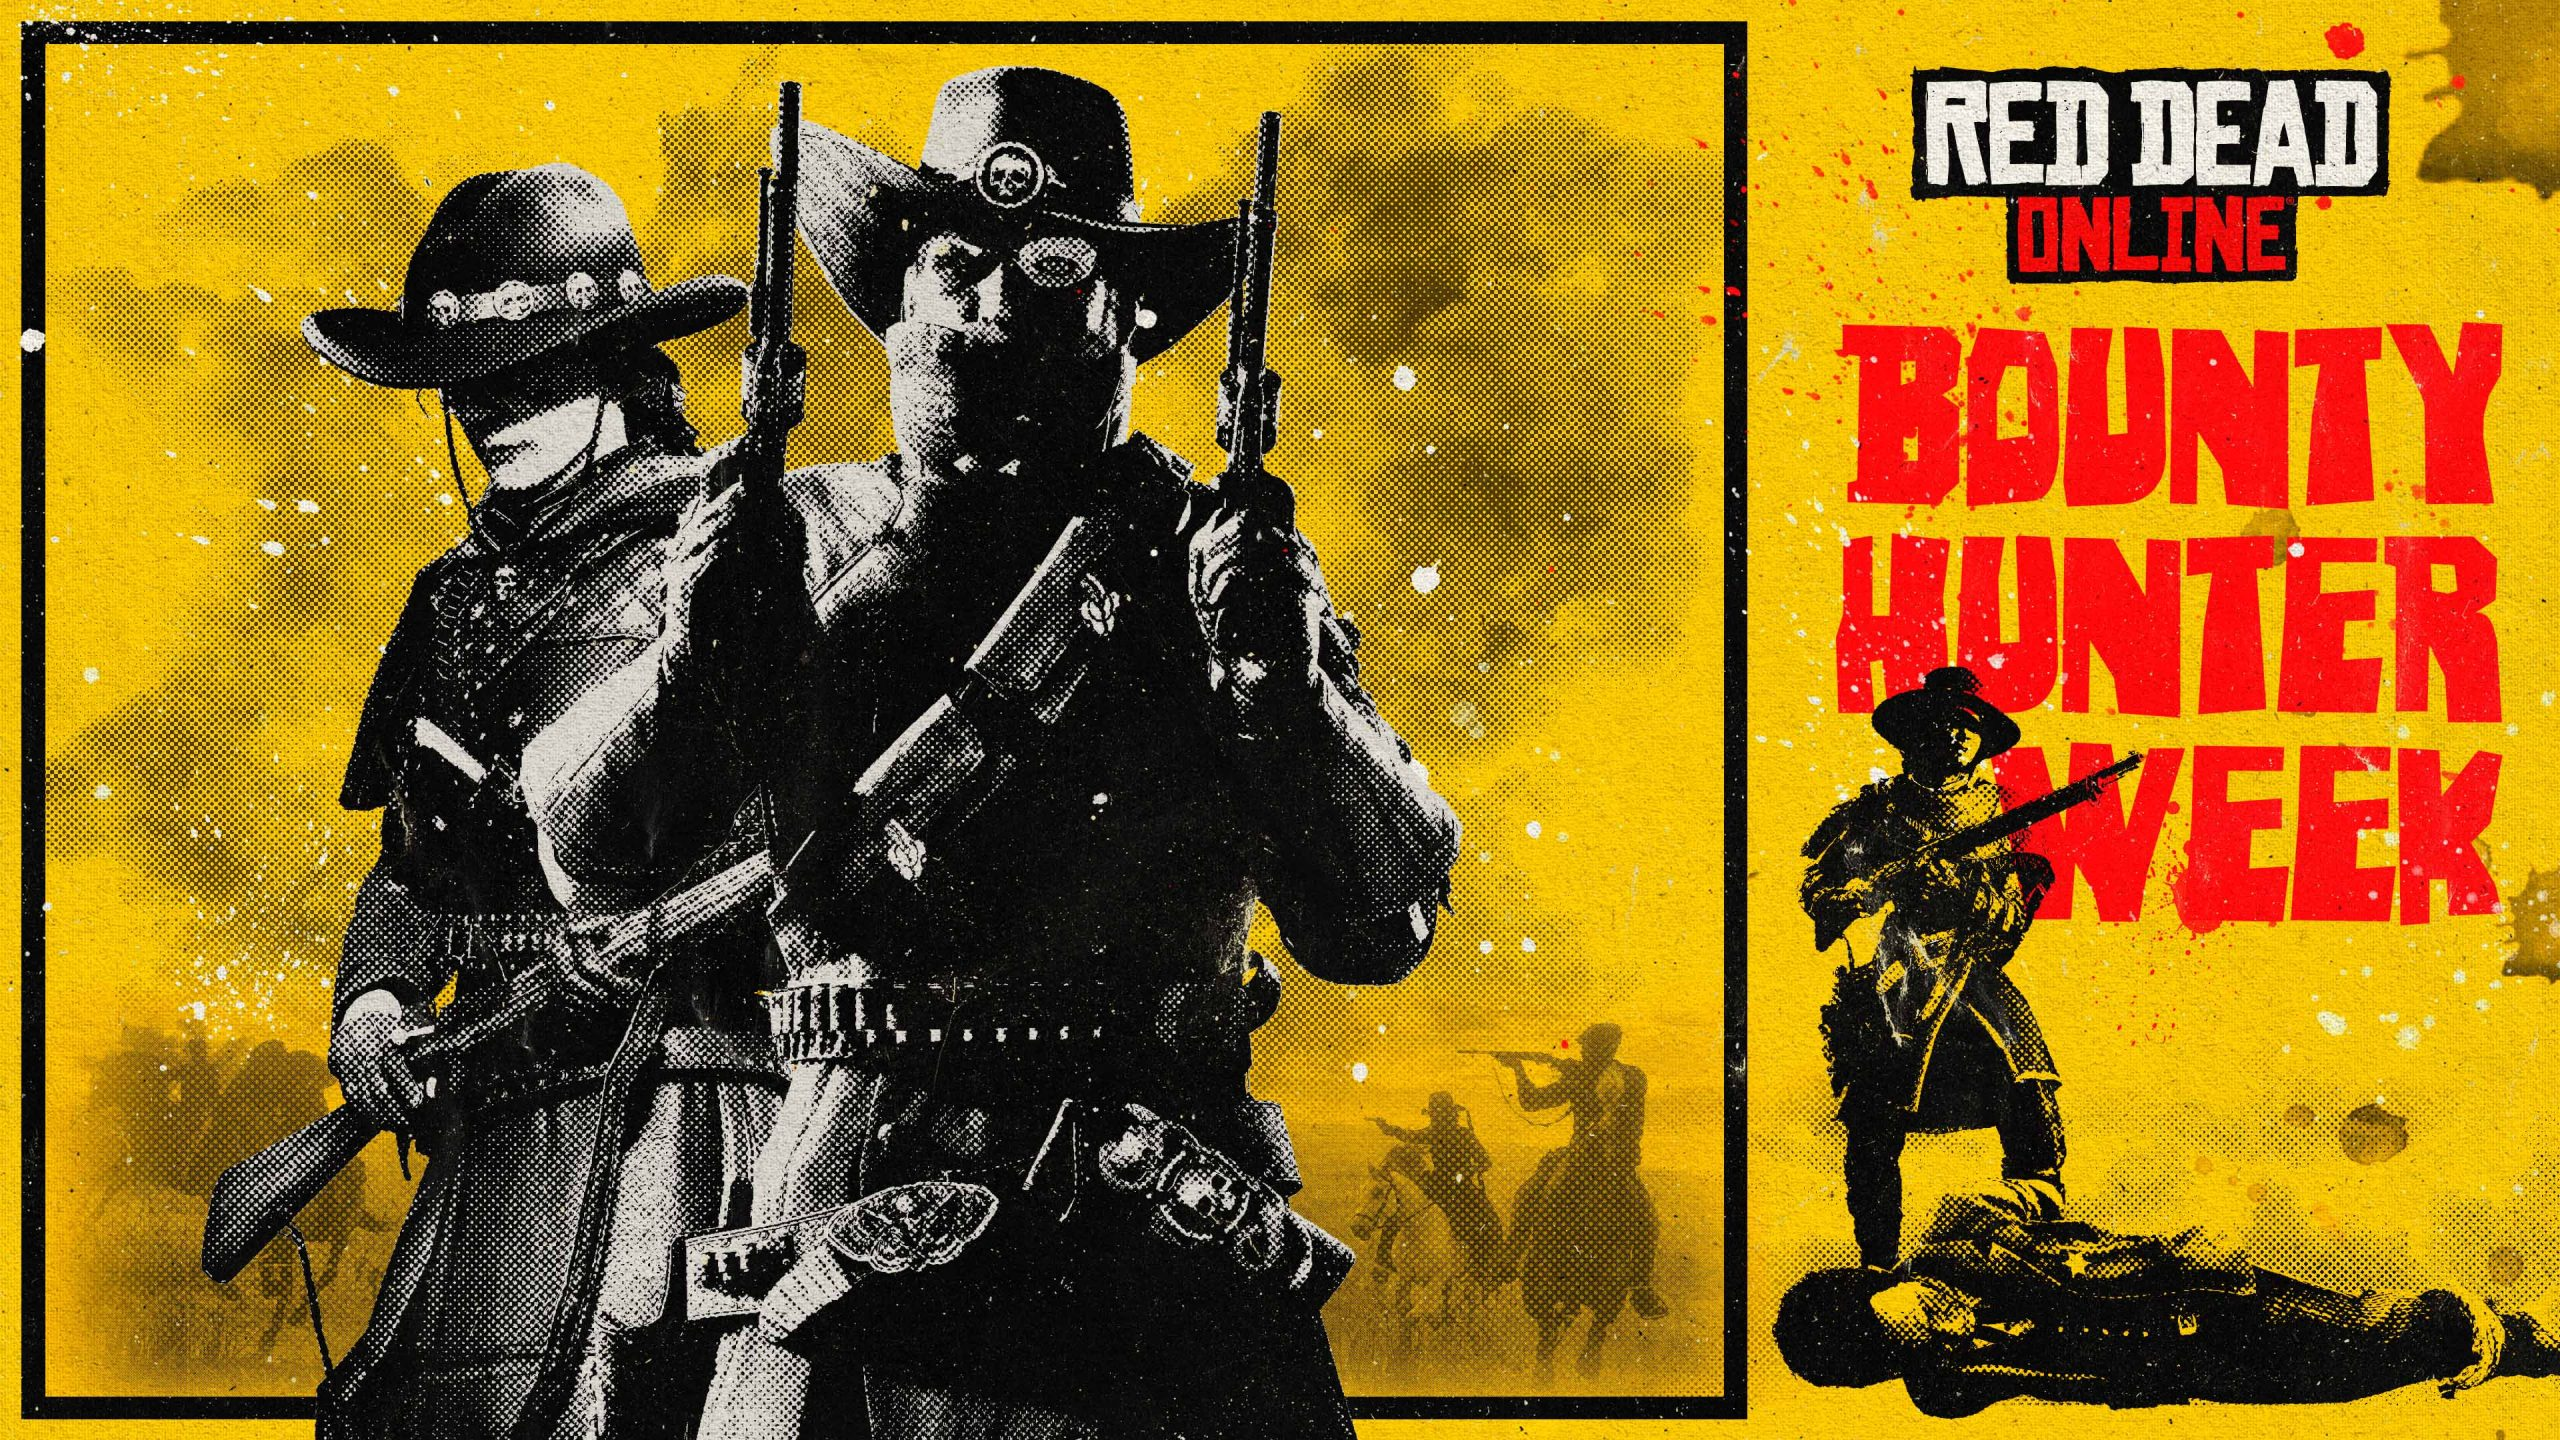 Red Dead Online semaine chasseur primes